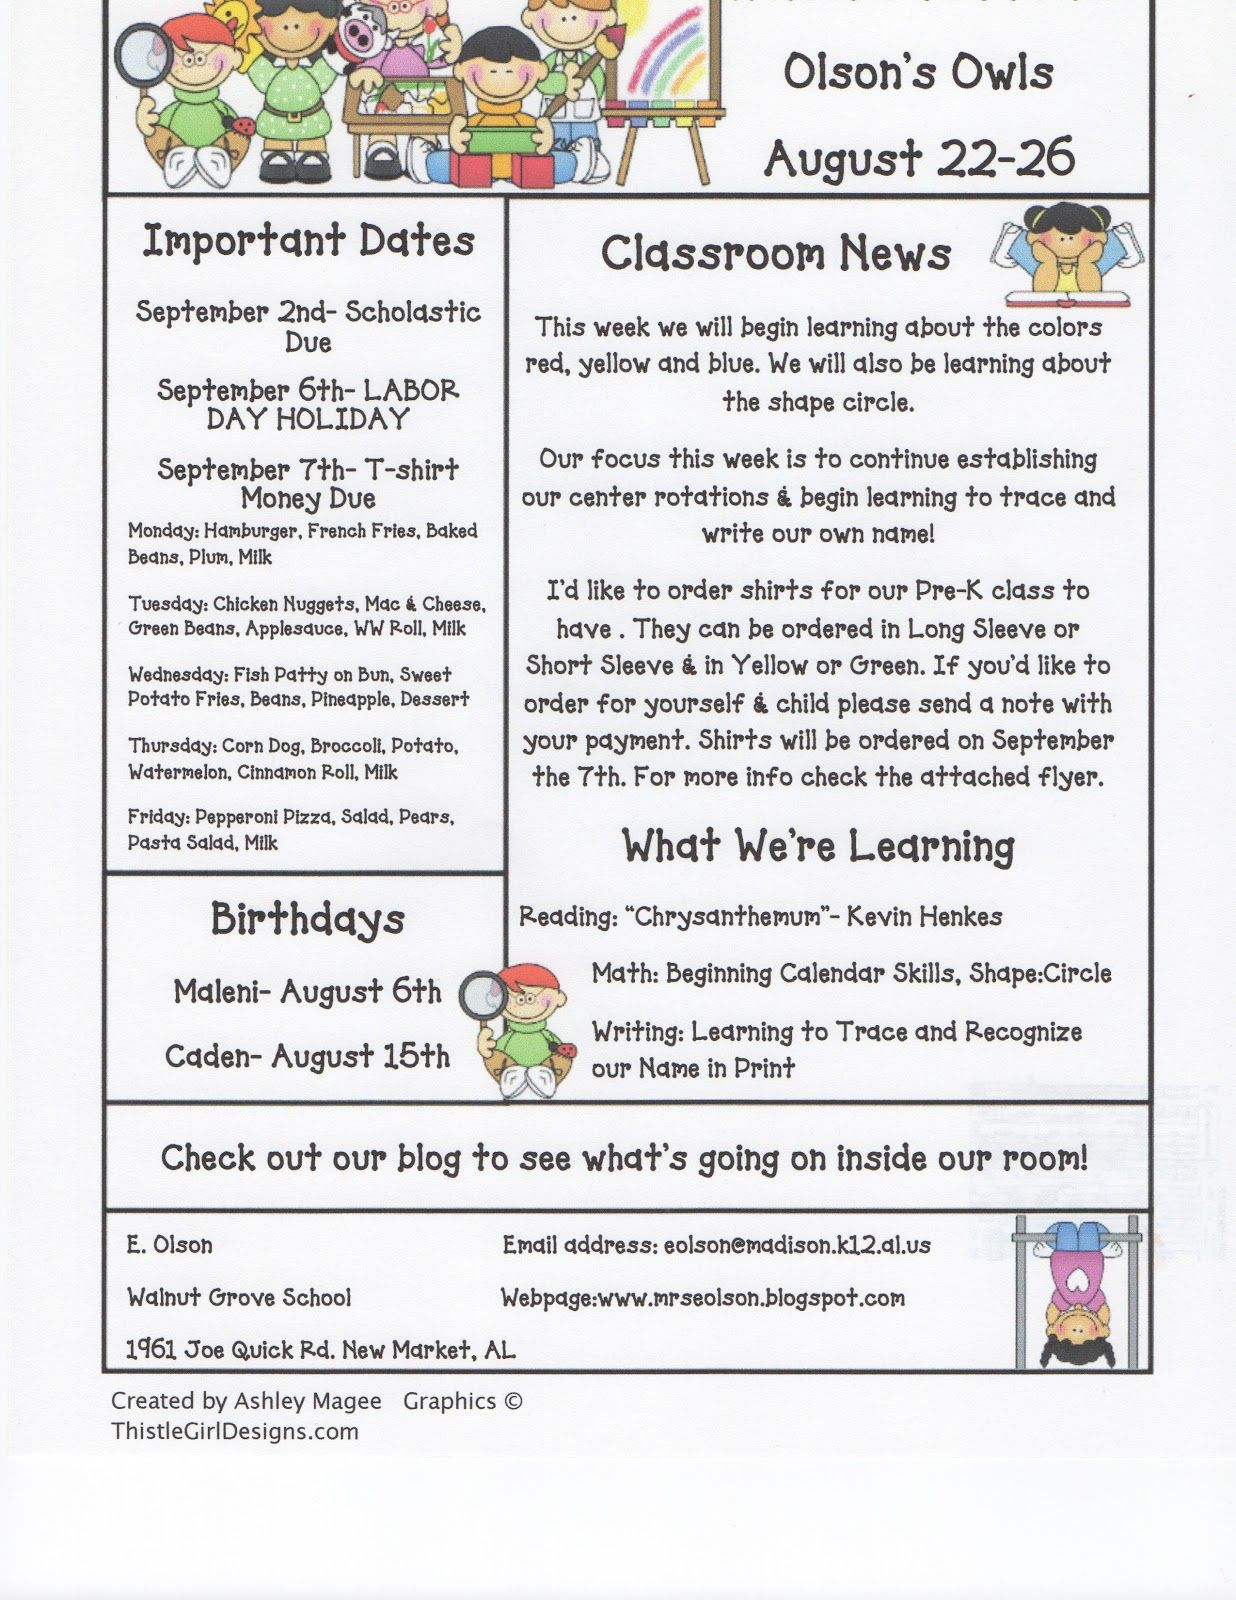 December School Newsletter Ideas | Click On The Image To Make It